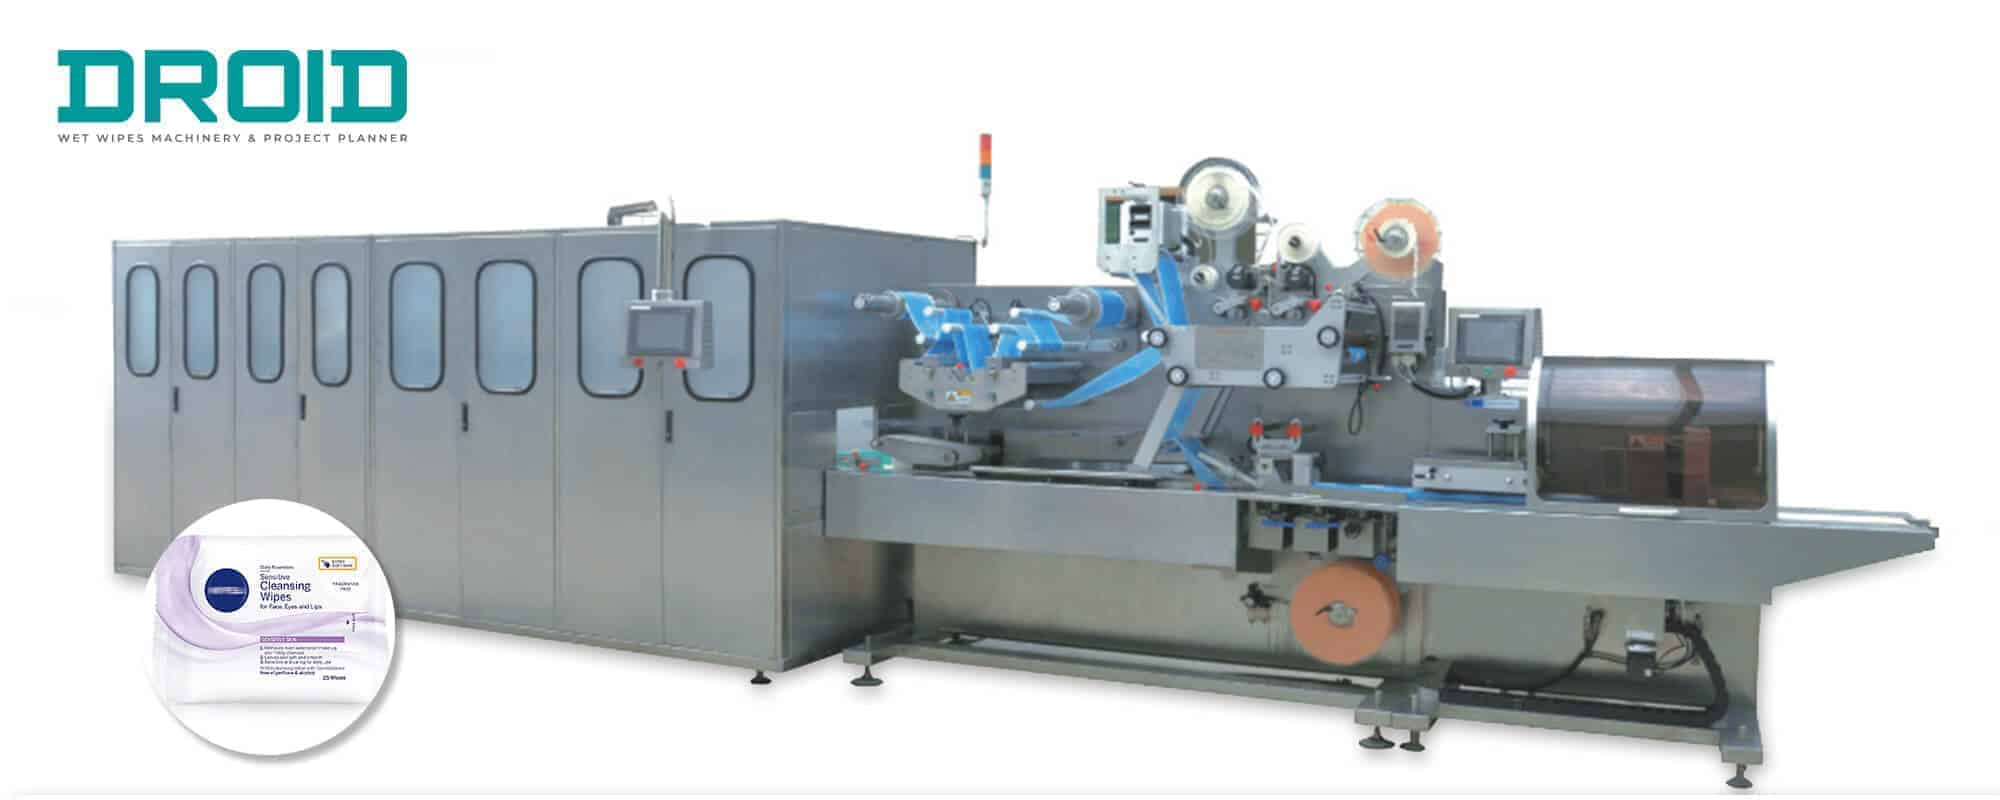 UT FL2 crossfol wet wipes converting and packaging machine - Wet Wipes Machine Products